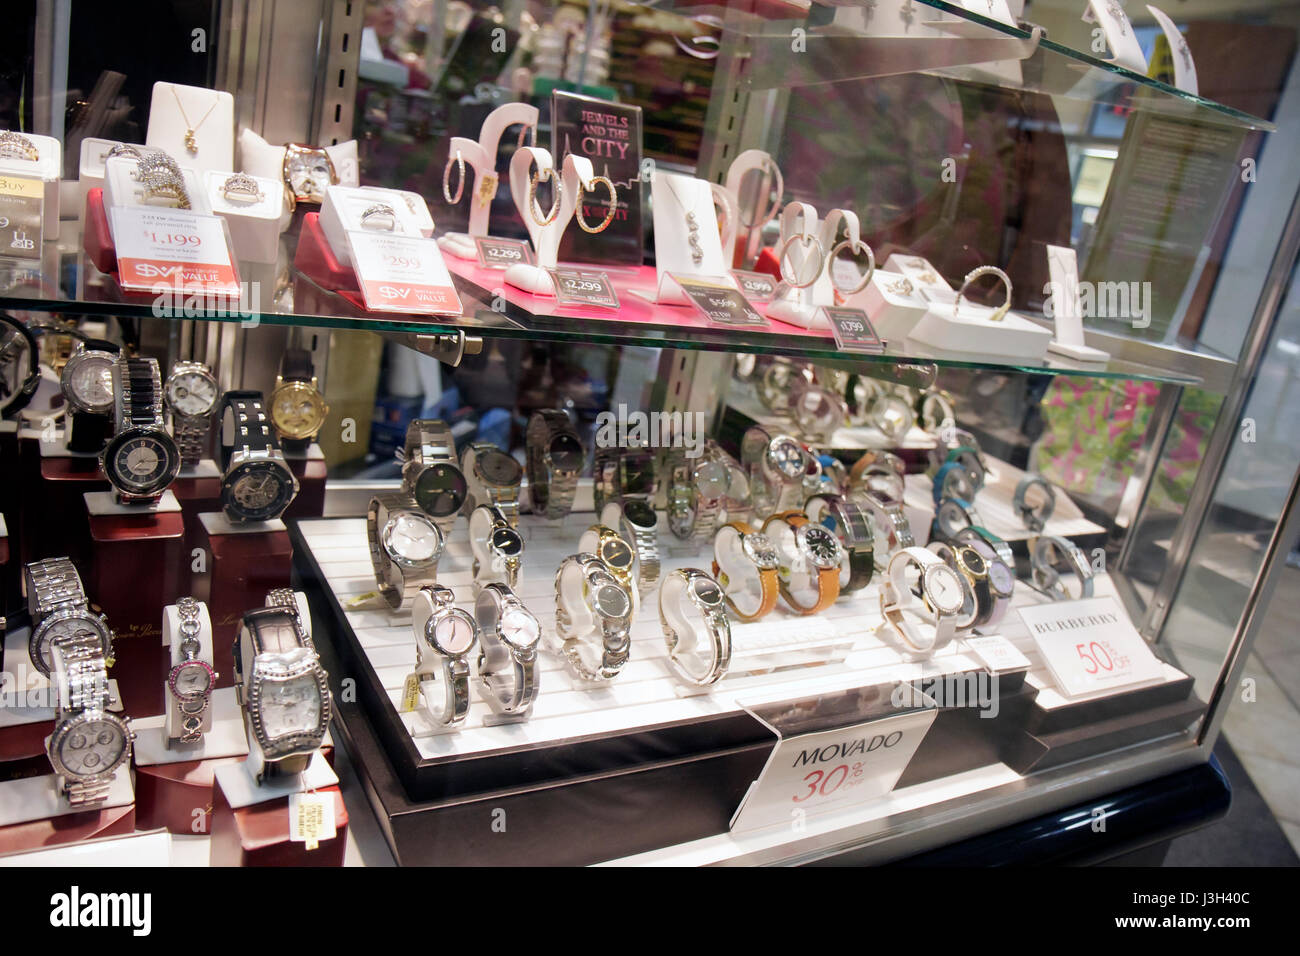 Miami Florida Dolphin Mall Burlington Coat Factory fine jewelry sale  discount watches women s Movado display case shopping a27a3fec48043